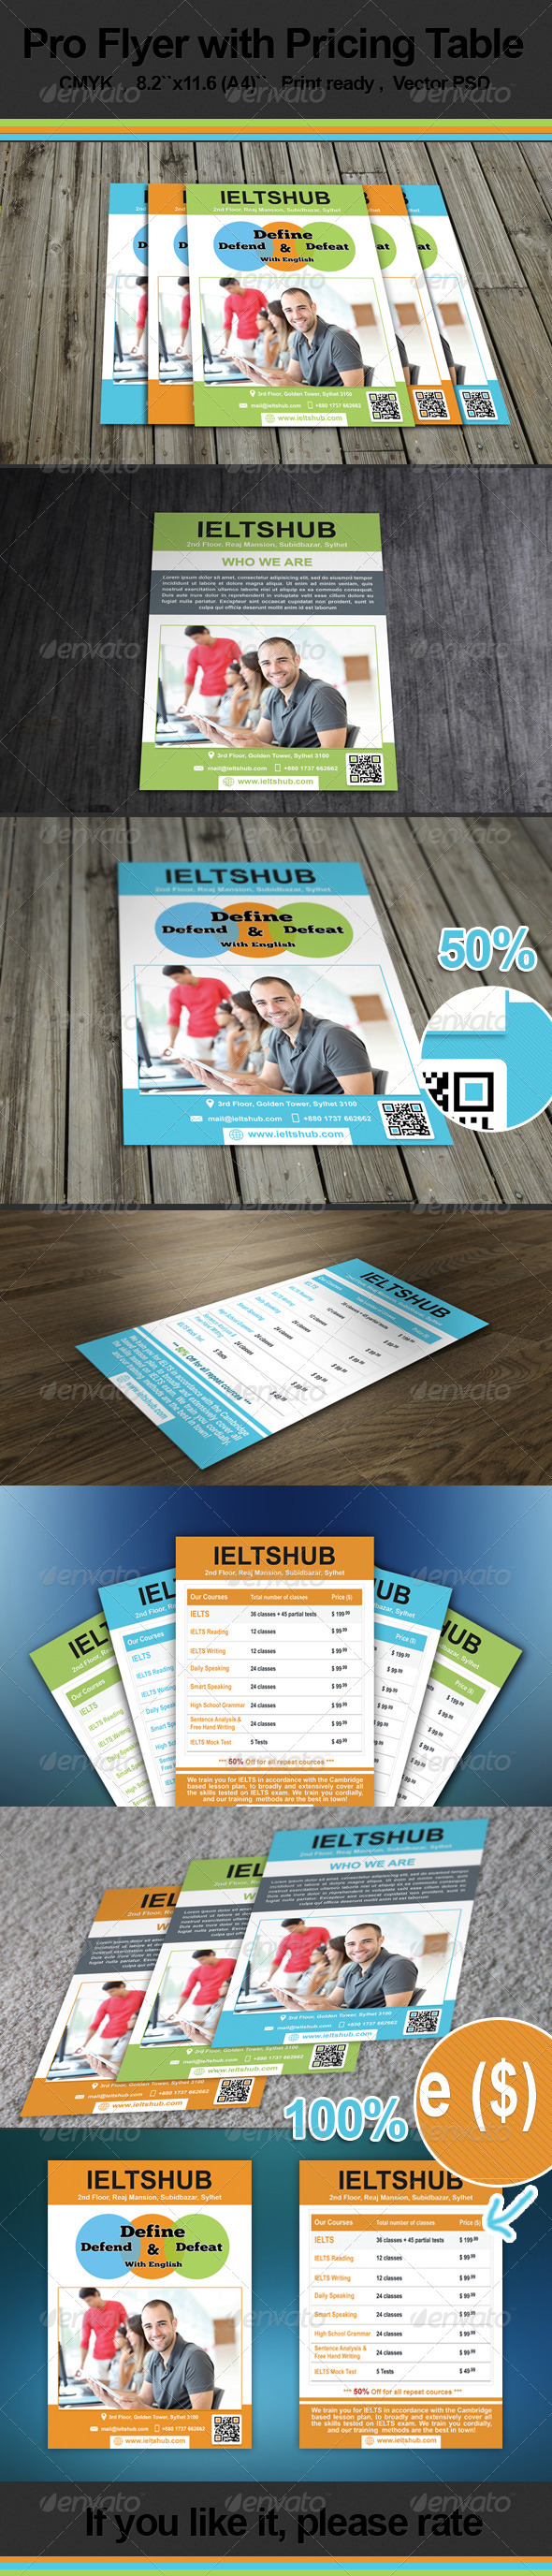 Pro Flyer with Pricing table